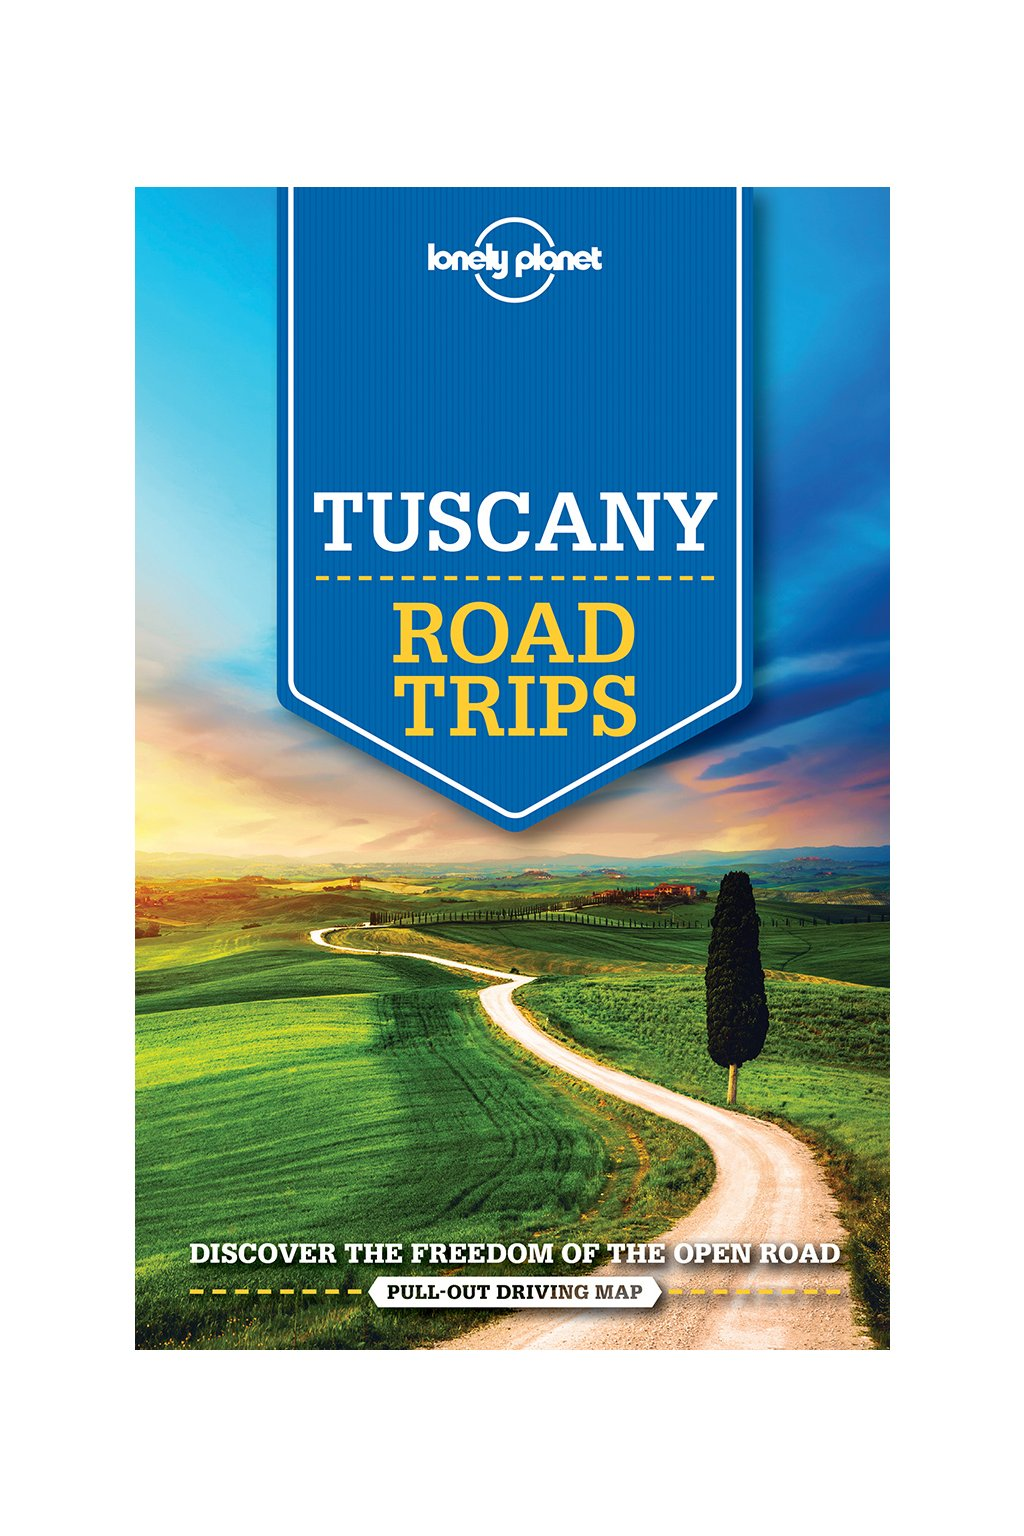 55532 Tuscany Road Trips 1.9781760340544.browse.0